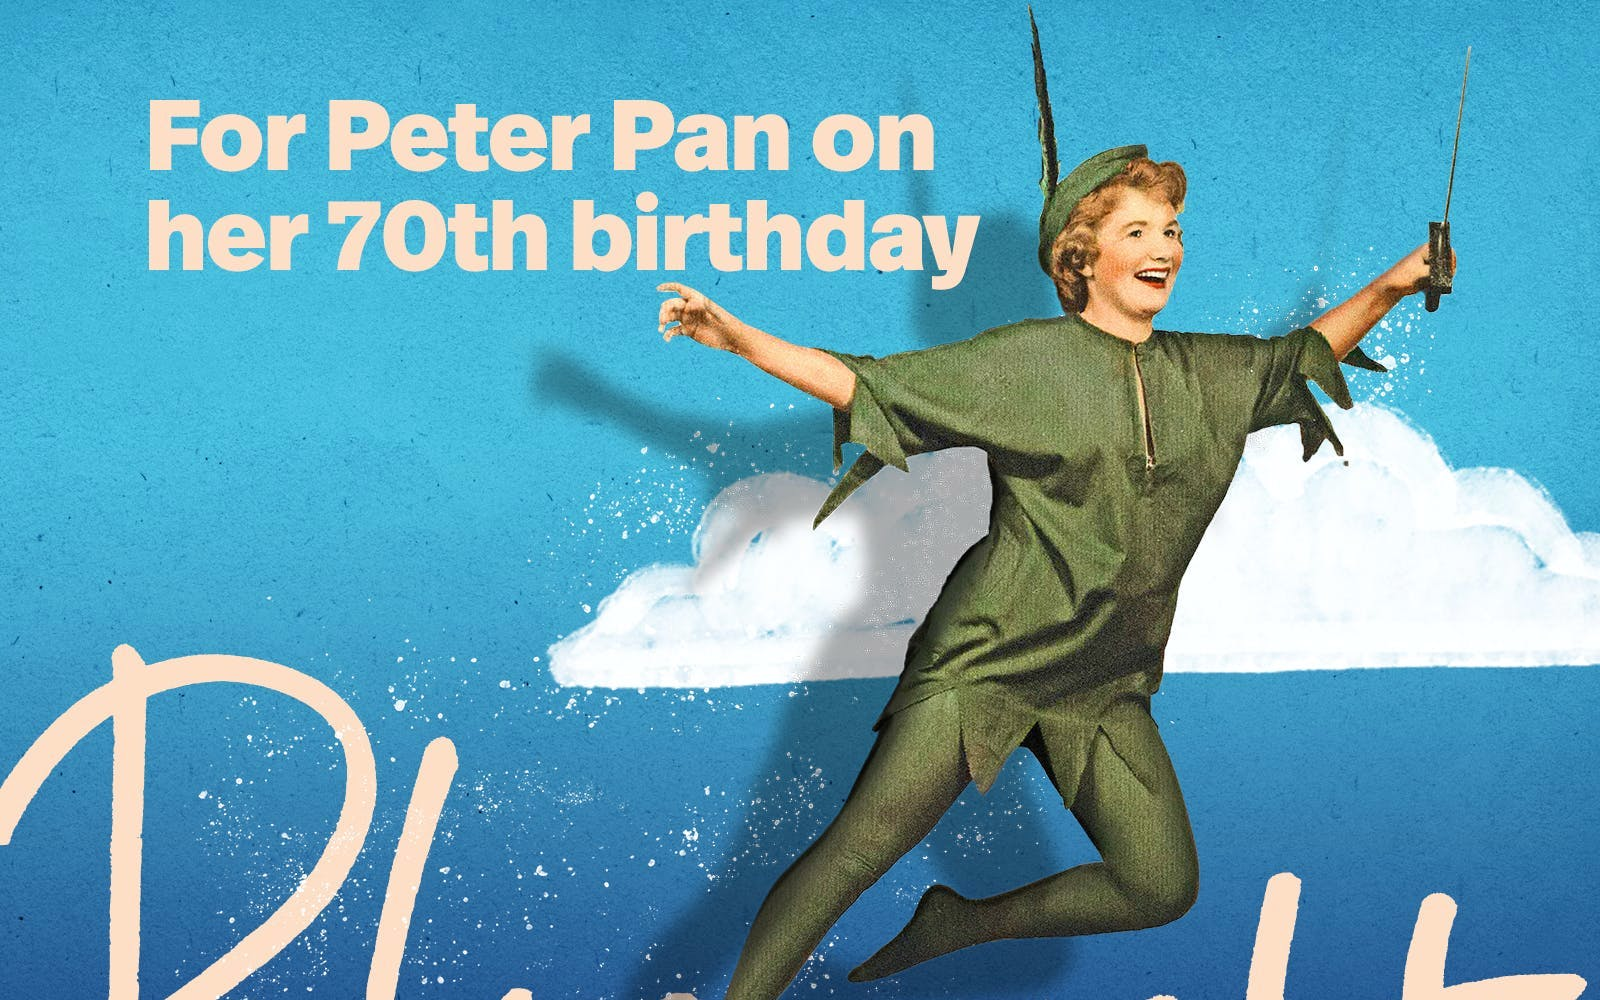 for peter pan on her 70th birthday-1